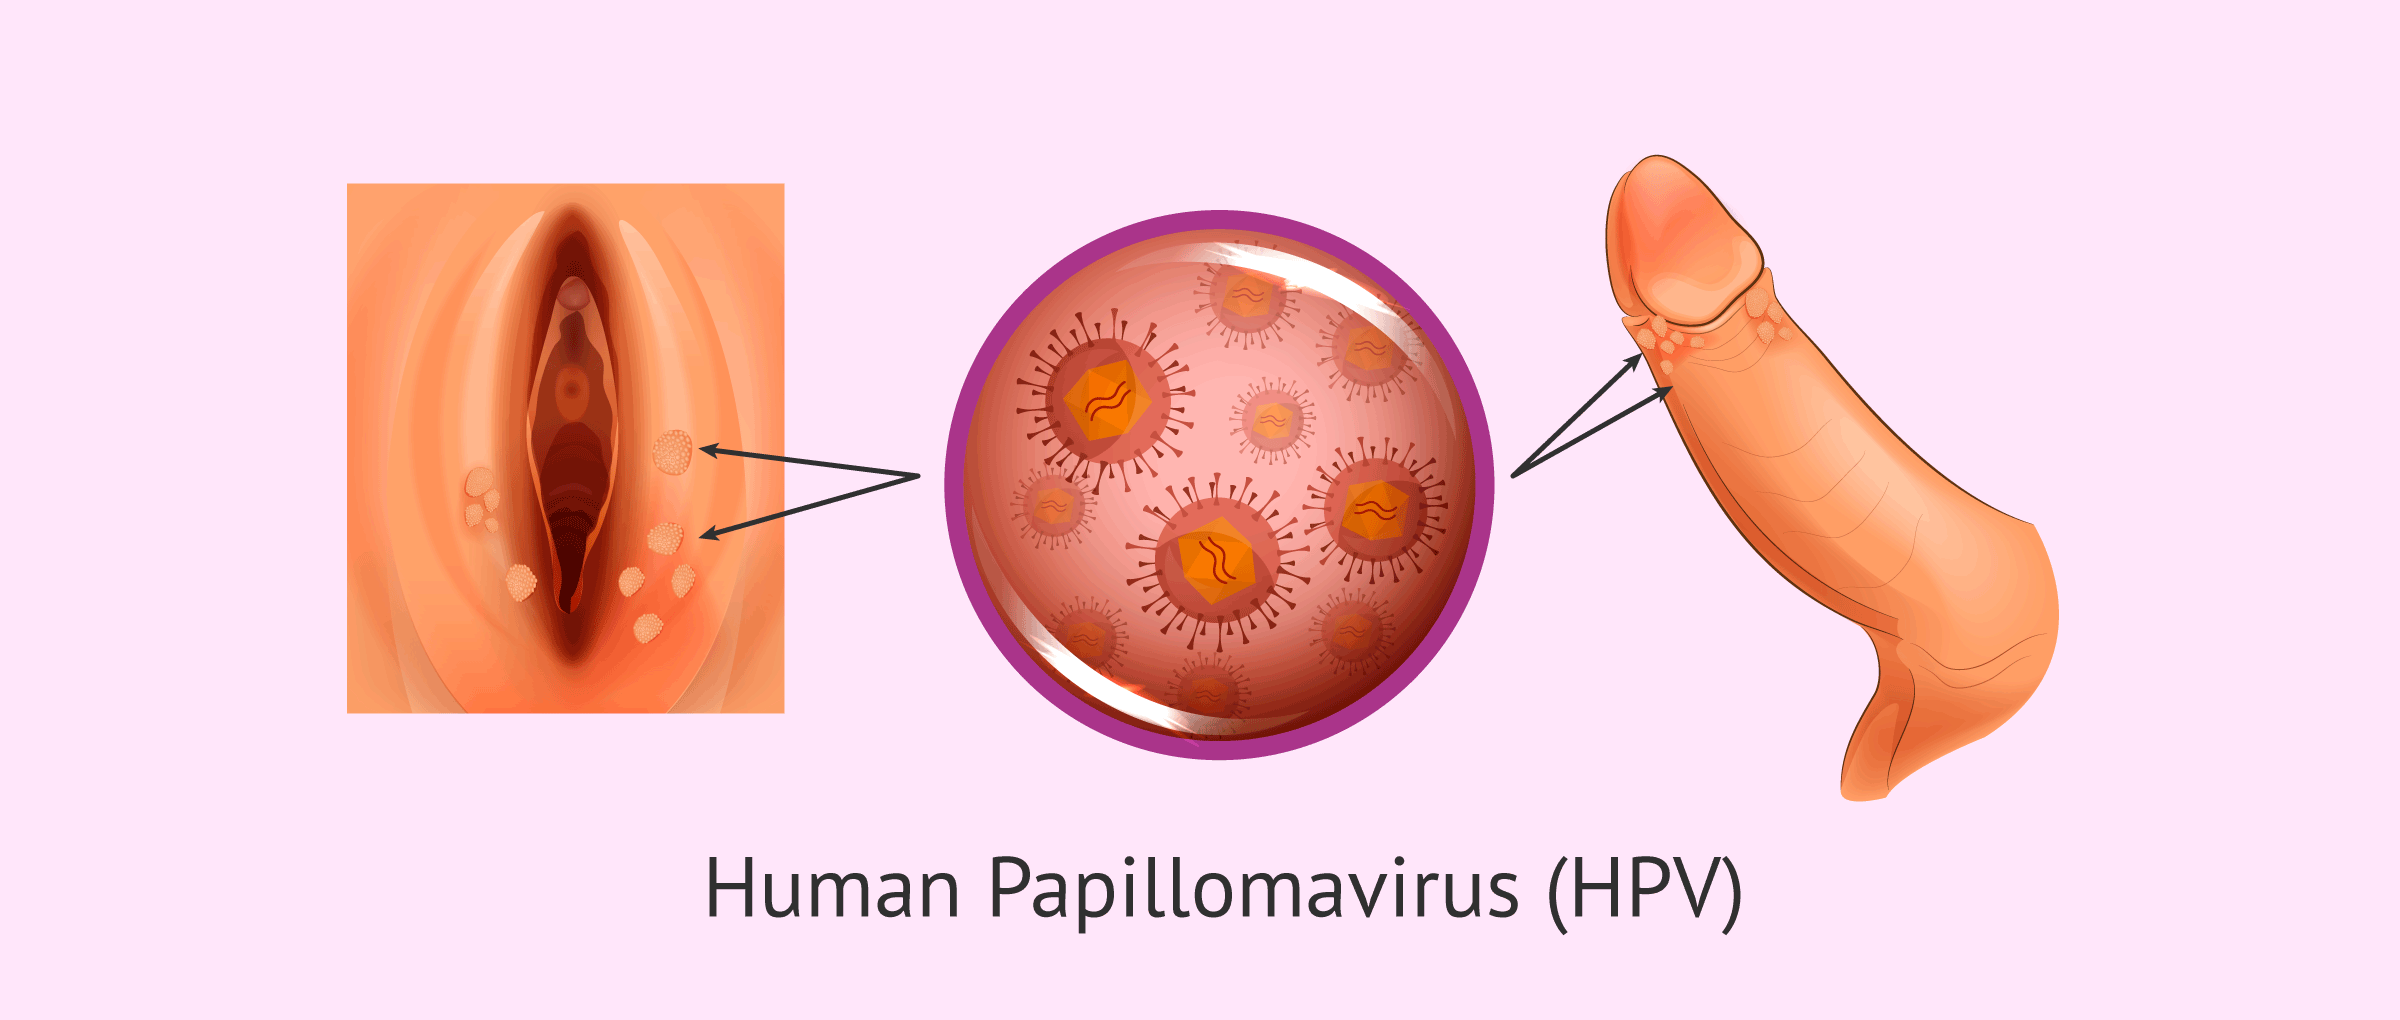 hhh | Cervical Cancer | Oral Sex, Hpv genital warts male symptoms, Hpv virus symptoms male